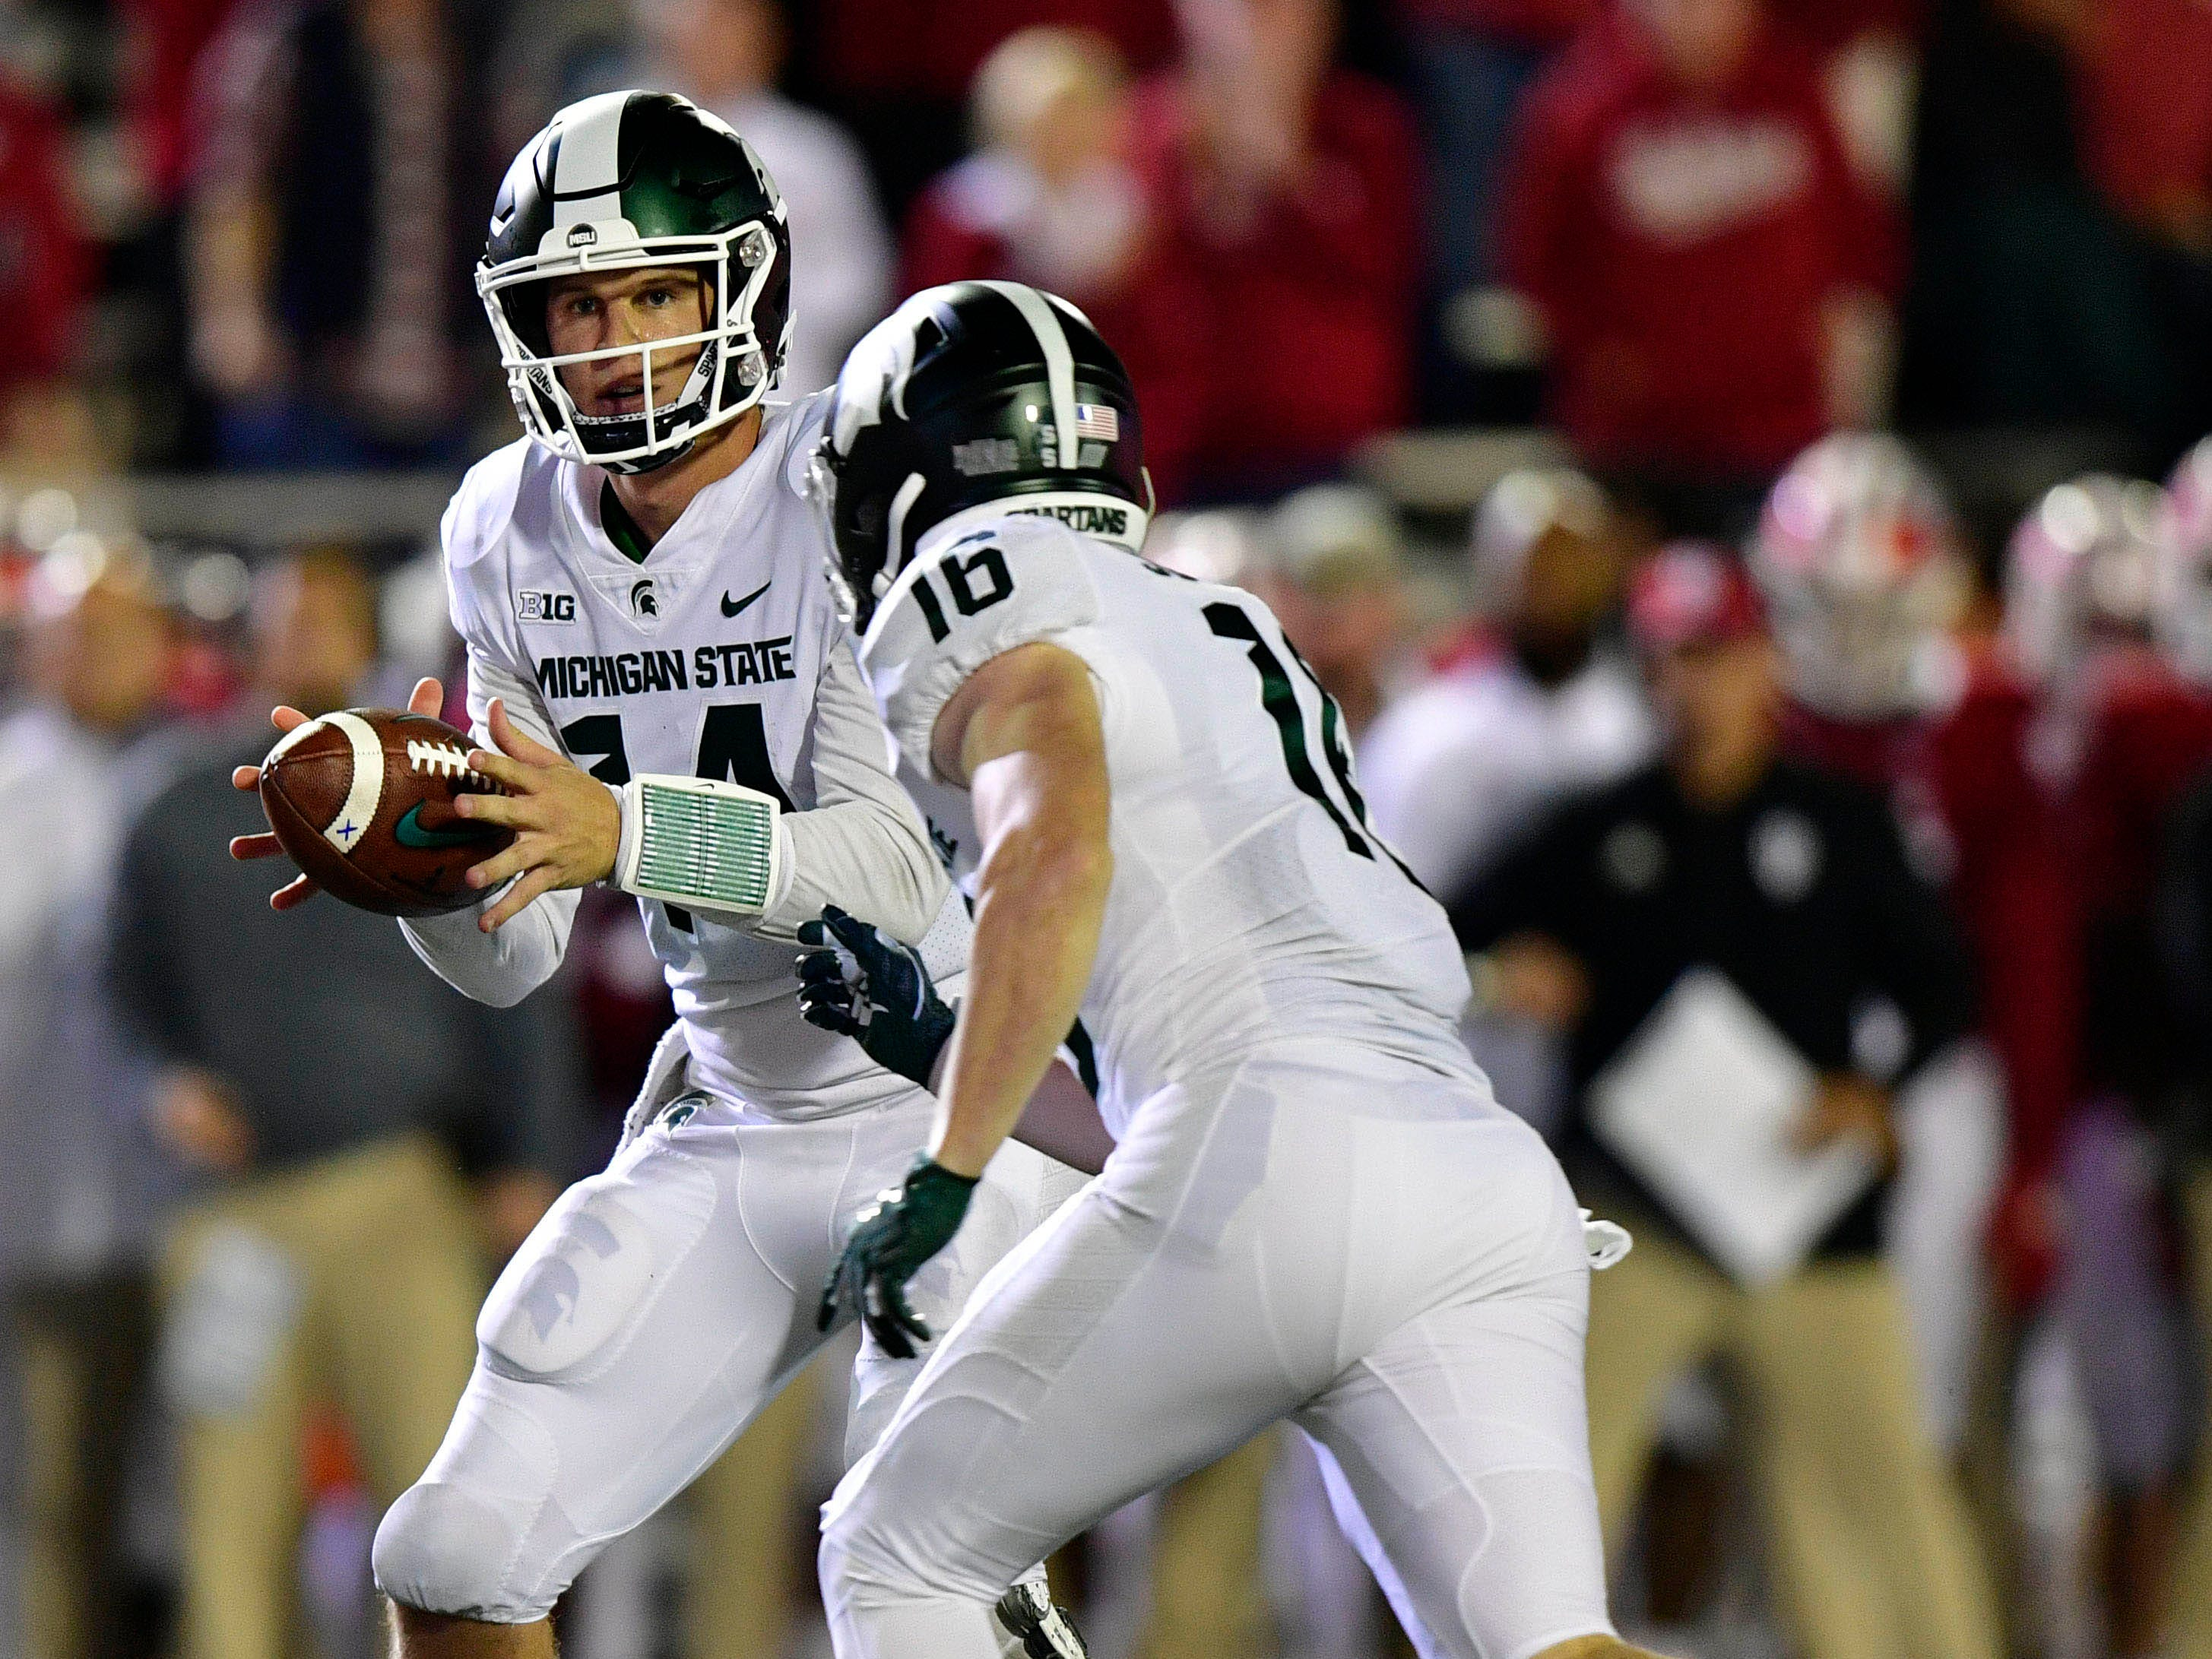 Michigan State Spartans quarterback Brian Lewerke (14) pitches a ball to  Spartans wide receiver Brandon Sowards (16) during the second half of the game against Indiana at Memorial Stadium. The Michigan State Spartans defeated the Indiana Hoosiers 35 to 21.